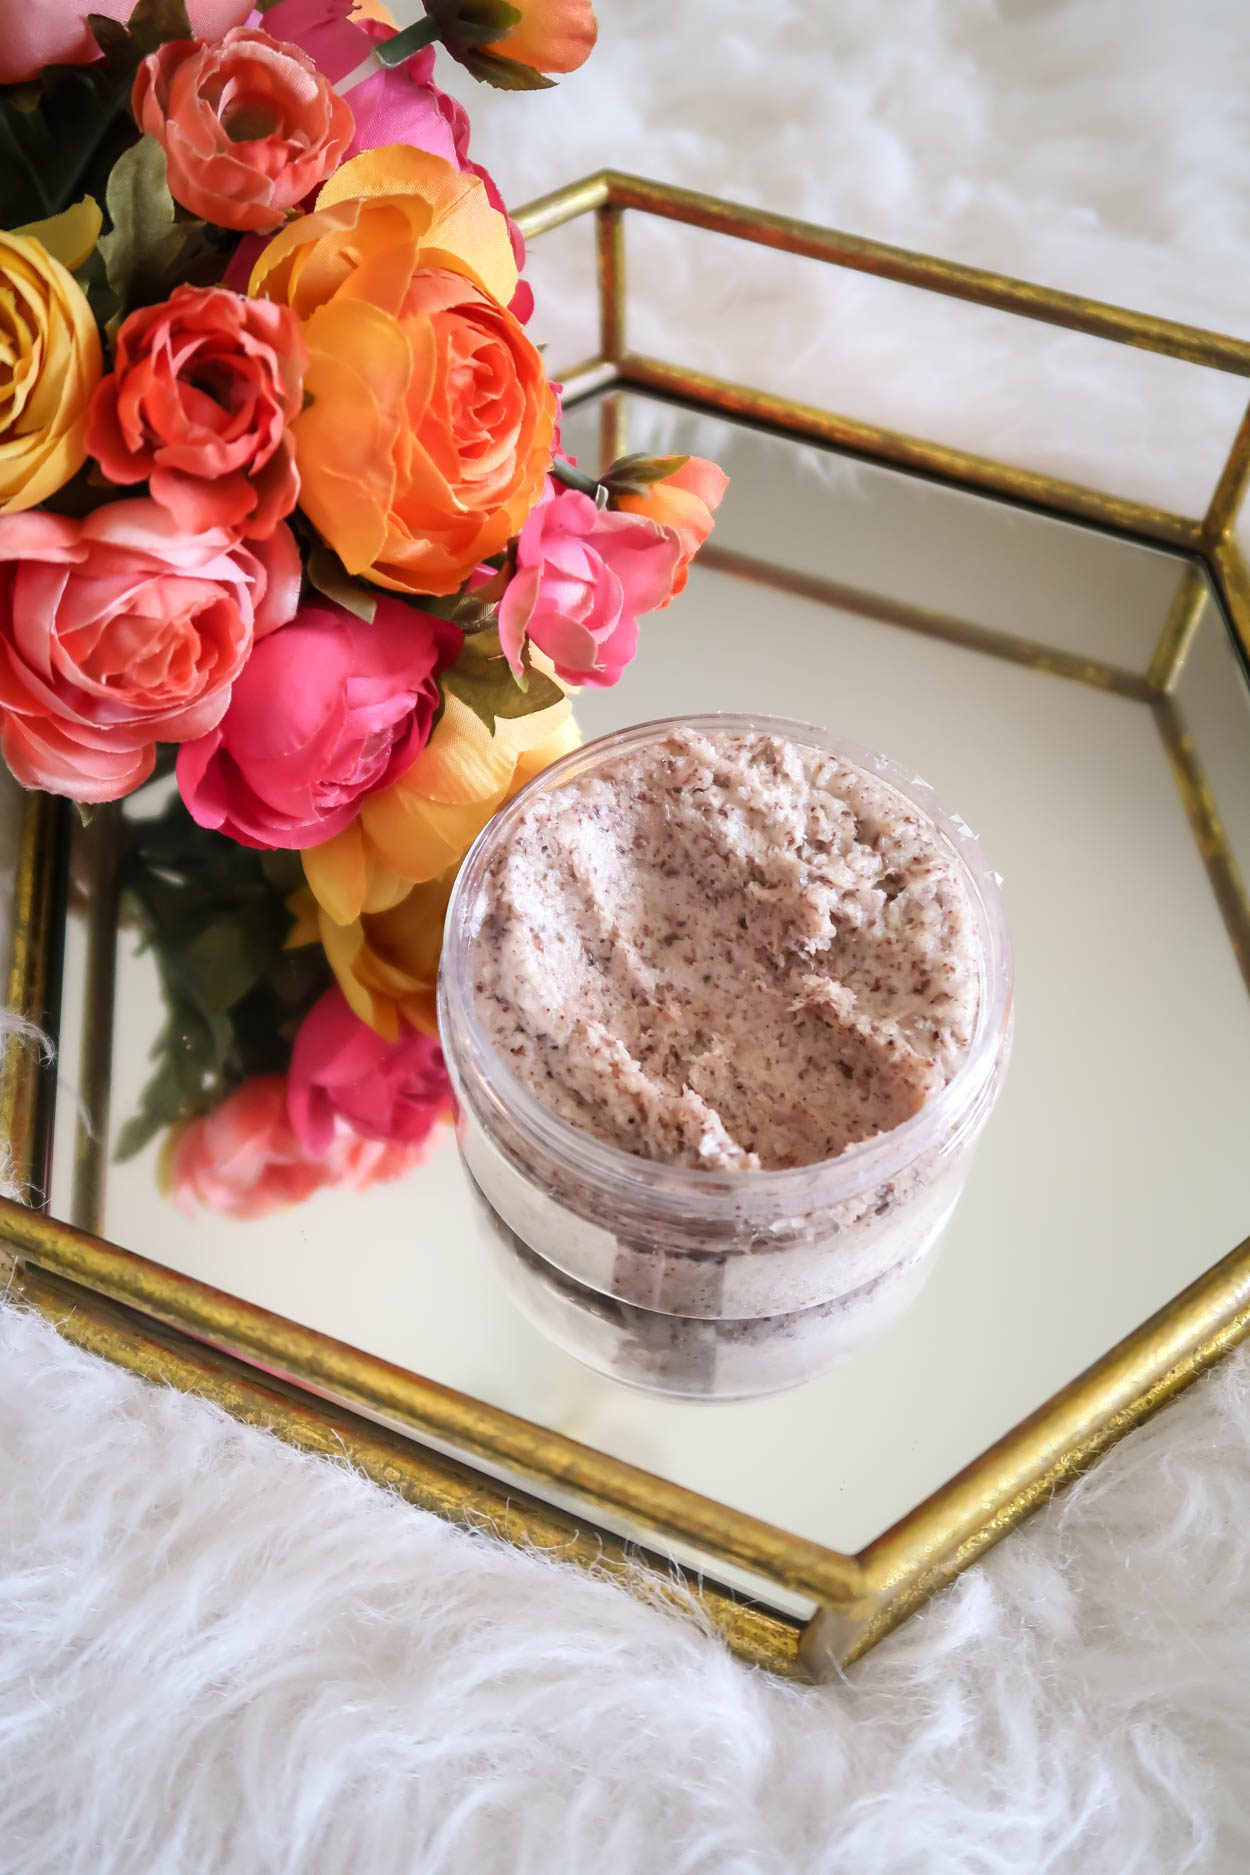 Simply Stine latest beauty post about the newest beauty product from Southern Sugaring. This exfoliating skin and body polish is fantastic! #Skincare #Beauty #BeautyBlogger